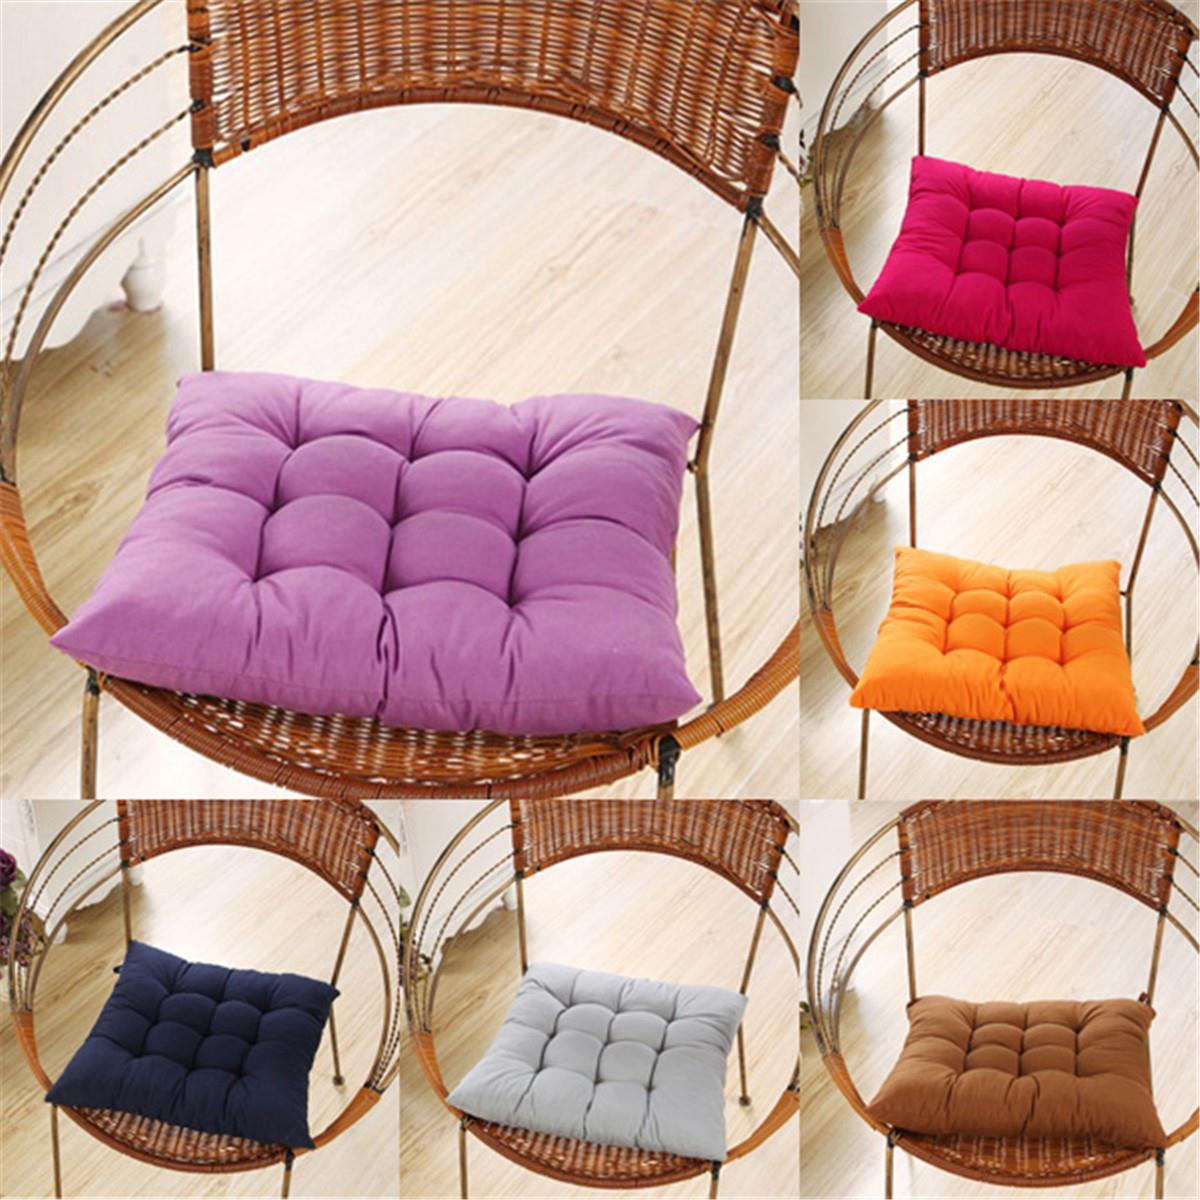 Glomorous Candy Colors Garden Patio Seat Cushion Chair Pads Tie On Pad Buttock Mathouseh Bedroom Office Decorative Crafts Cushion From Candy Colors Garden Patio Seat Cushion Chair Pads Tie On Pad Butt houzz 01 Chair Pads With Ties